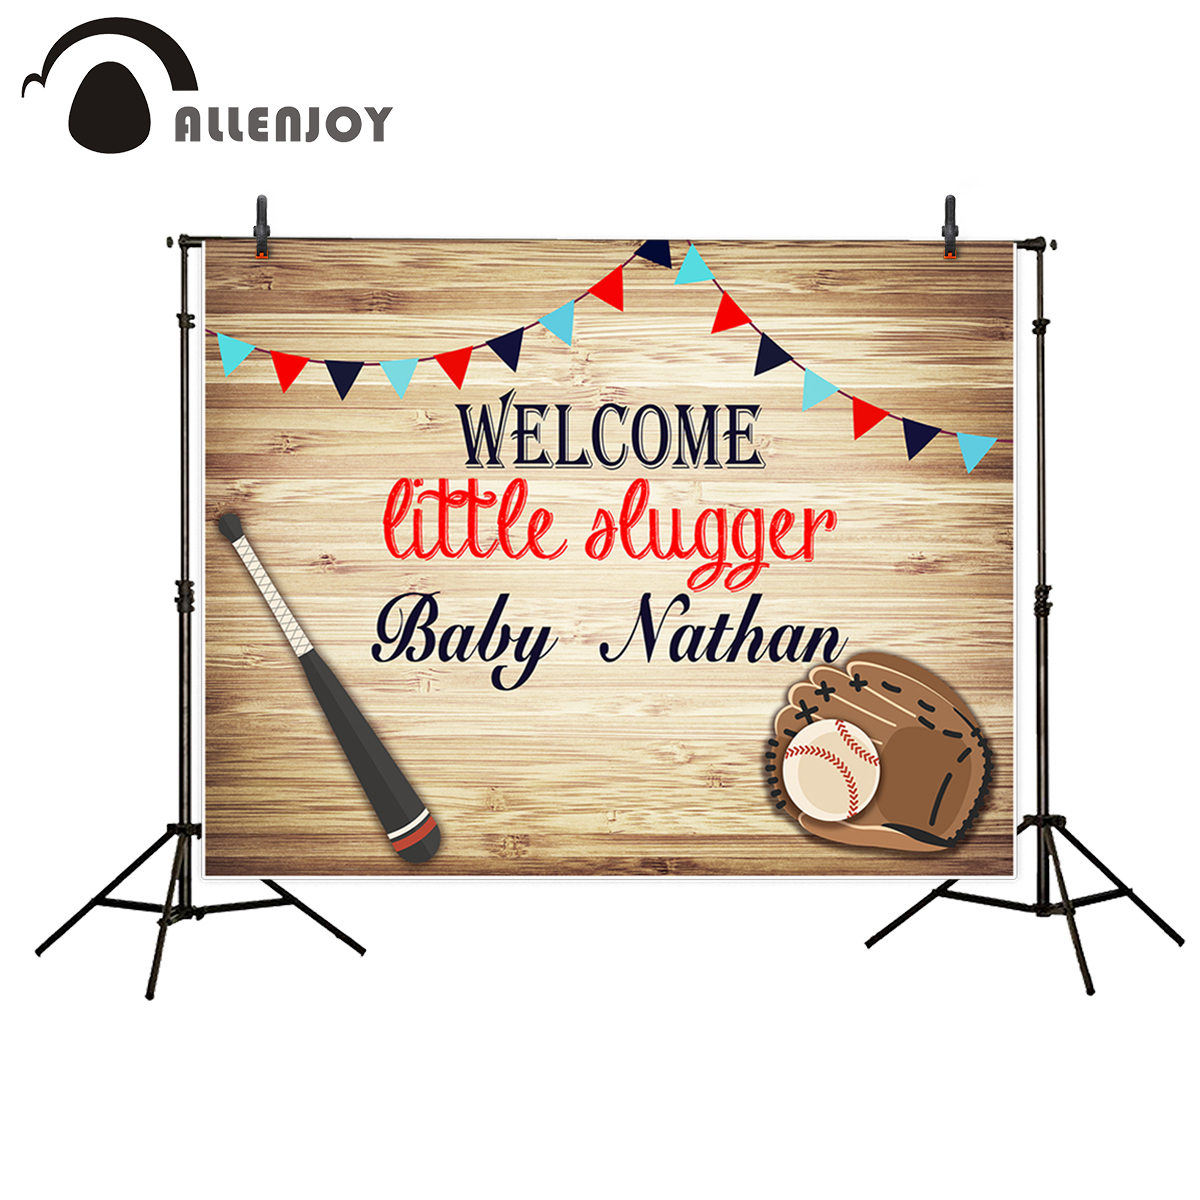 Allenjoy vinyl photographic background Bamboo flag baseball Party birthday welcome backdrop photocall professional customize